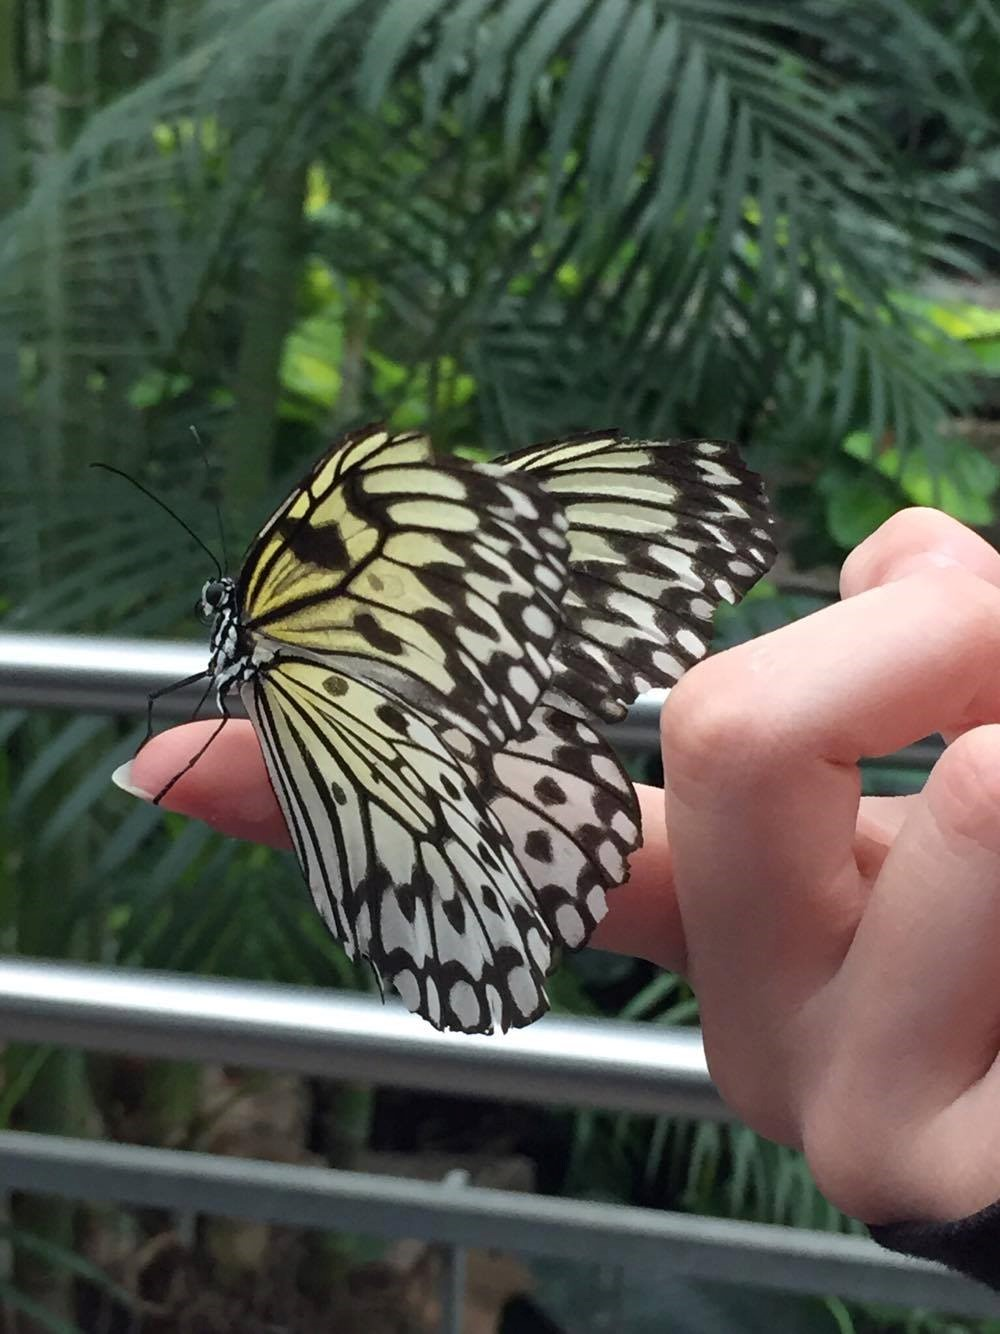 Butterfly lands on student's hand, Niagara Falls